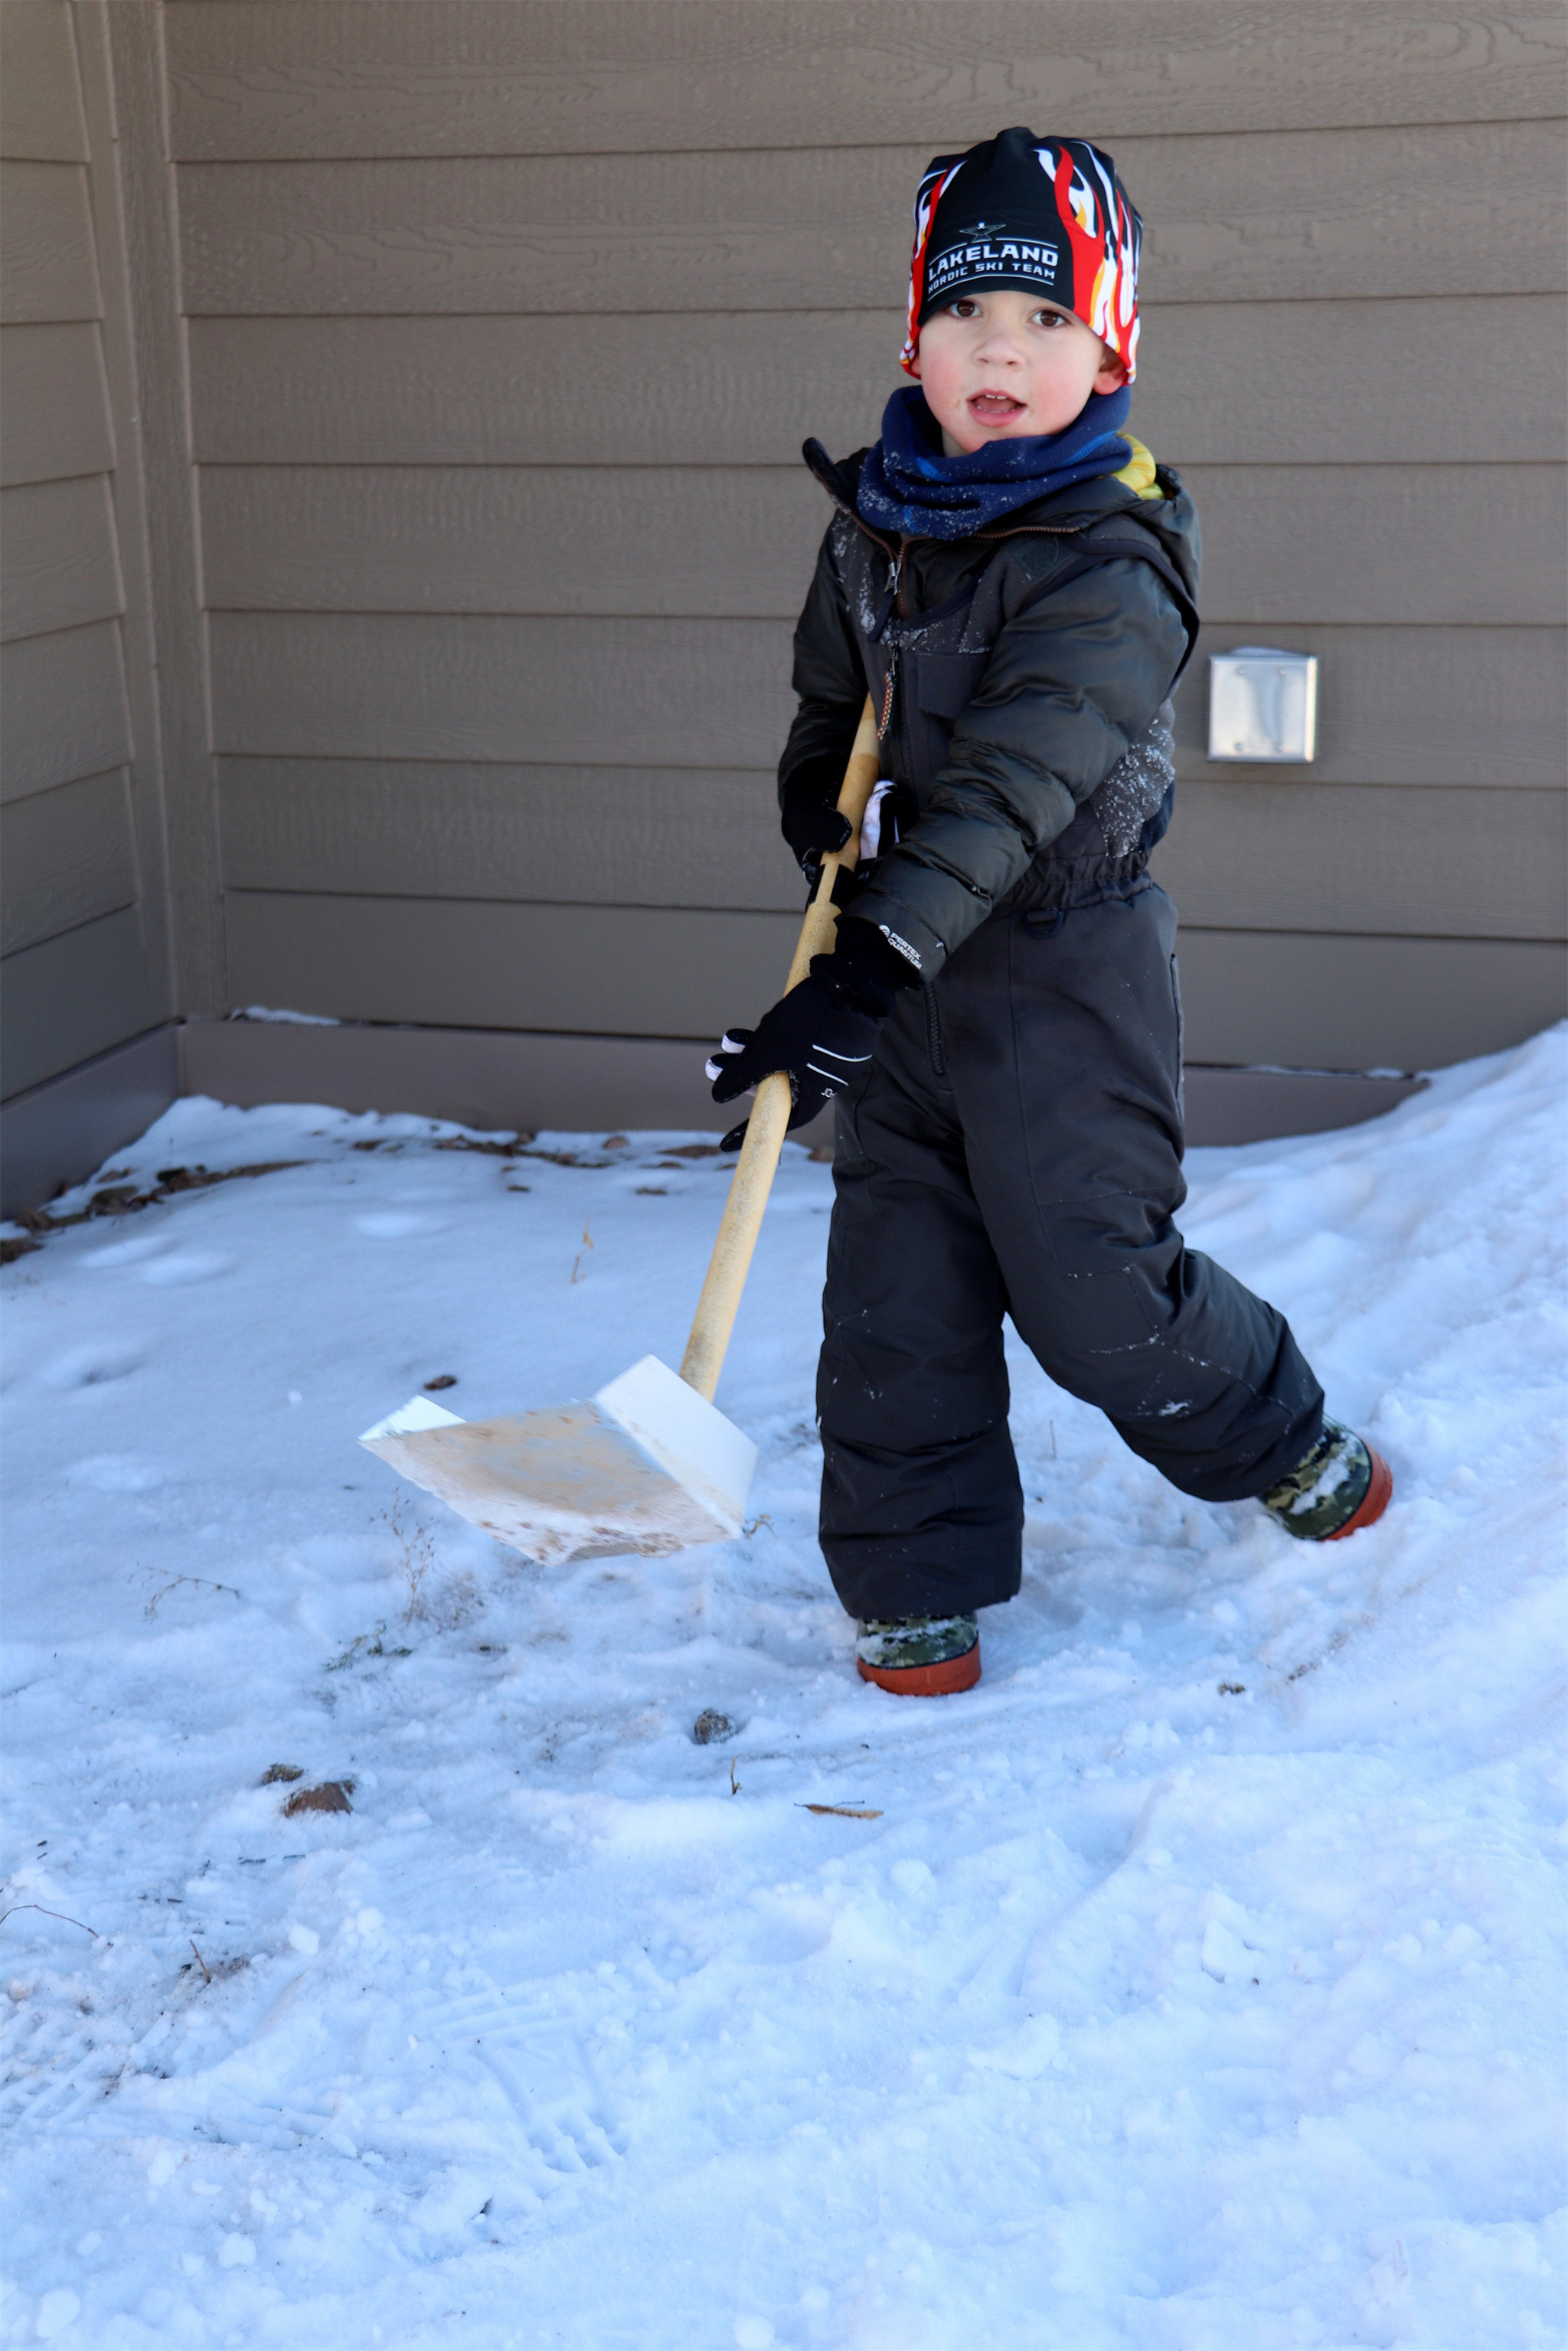 In the Lakeland area, Westley, 3, likes to play in the snow. Kim Johnson photo